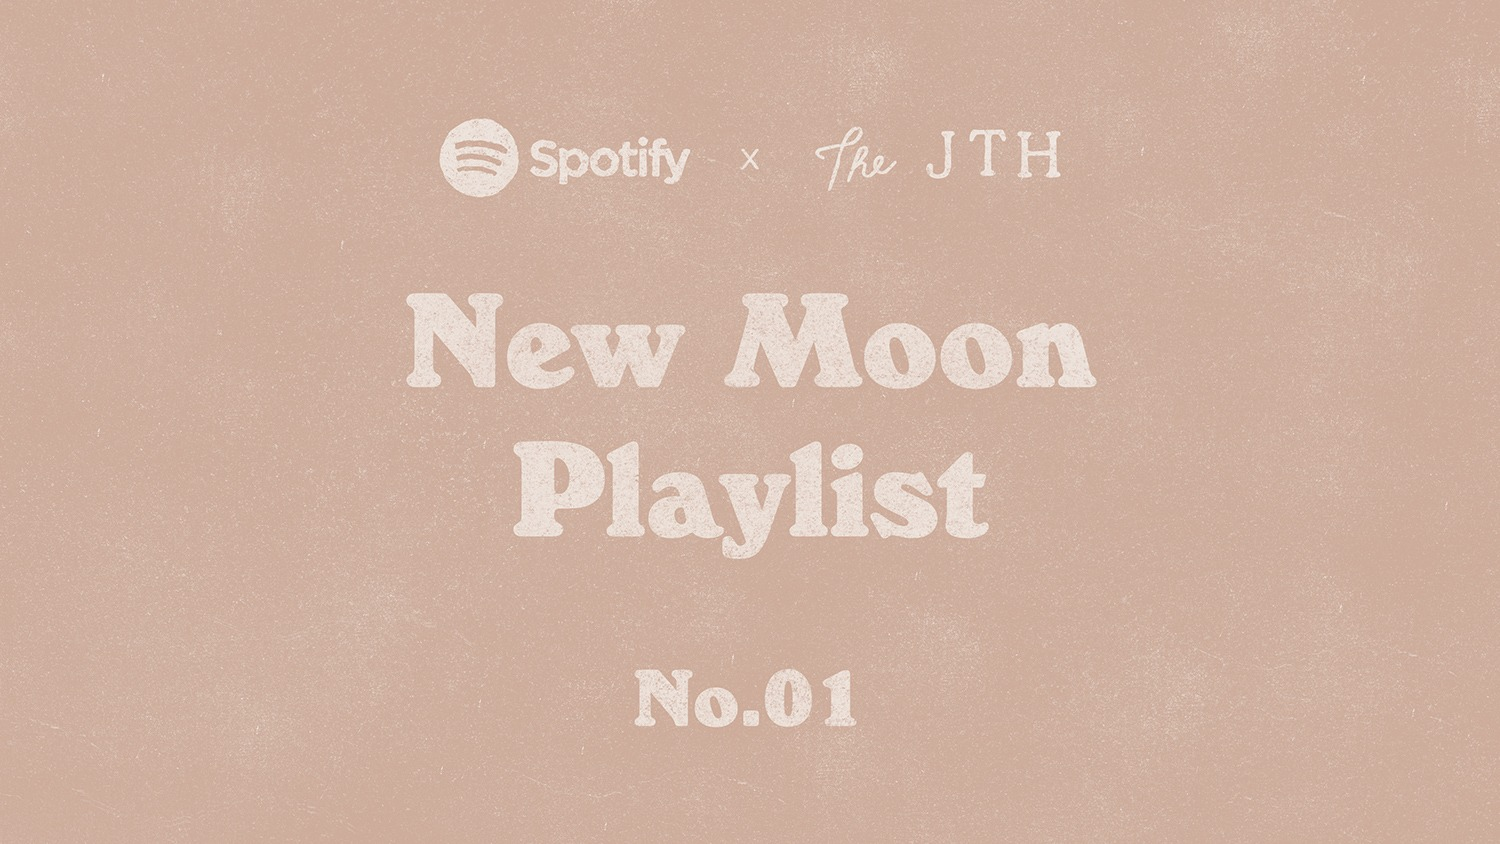 New Moon Playlist by The JTH on Spotify